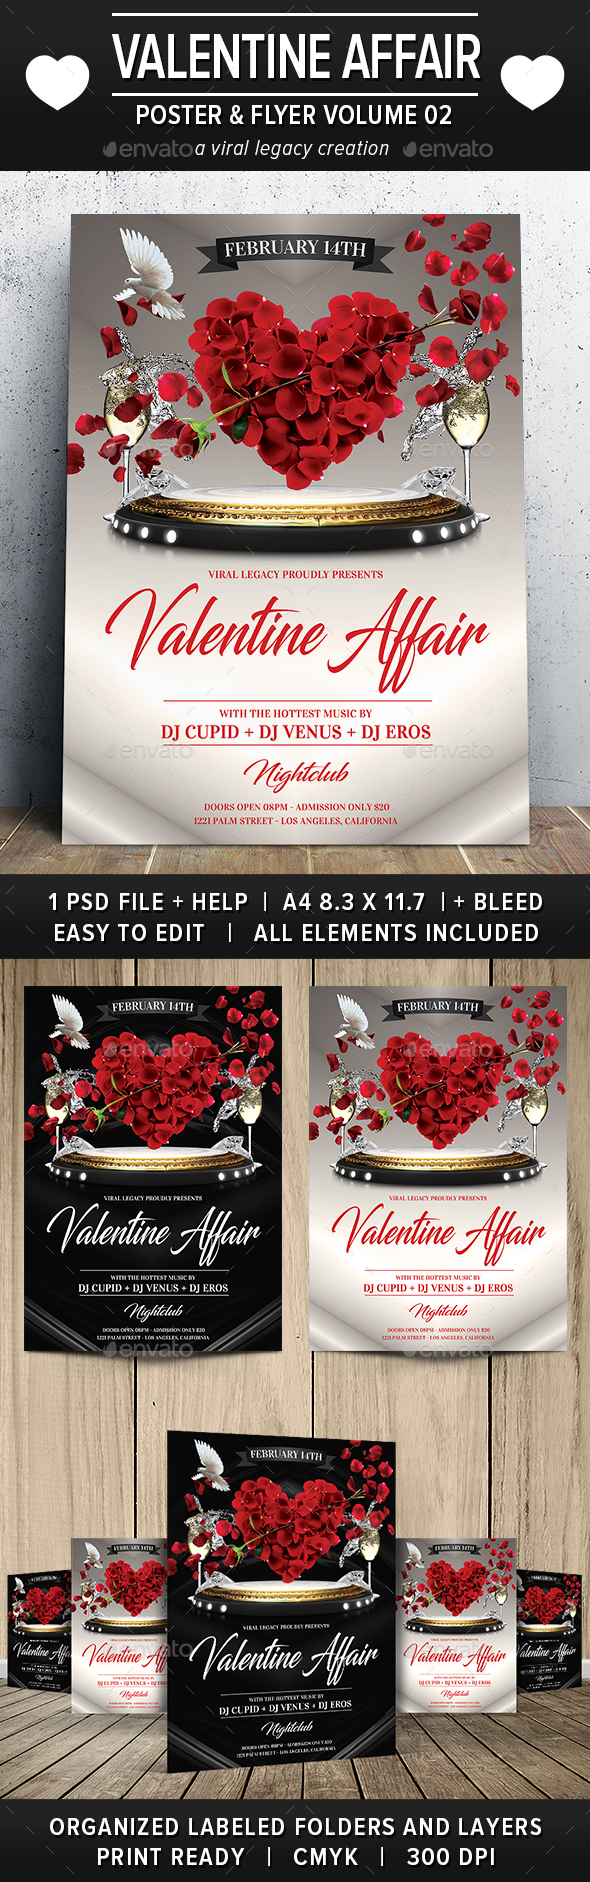 Valentine Affair Poster / Flyer V02 - Flyers Print Templates